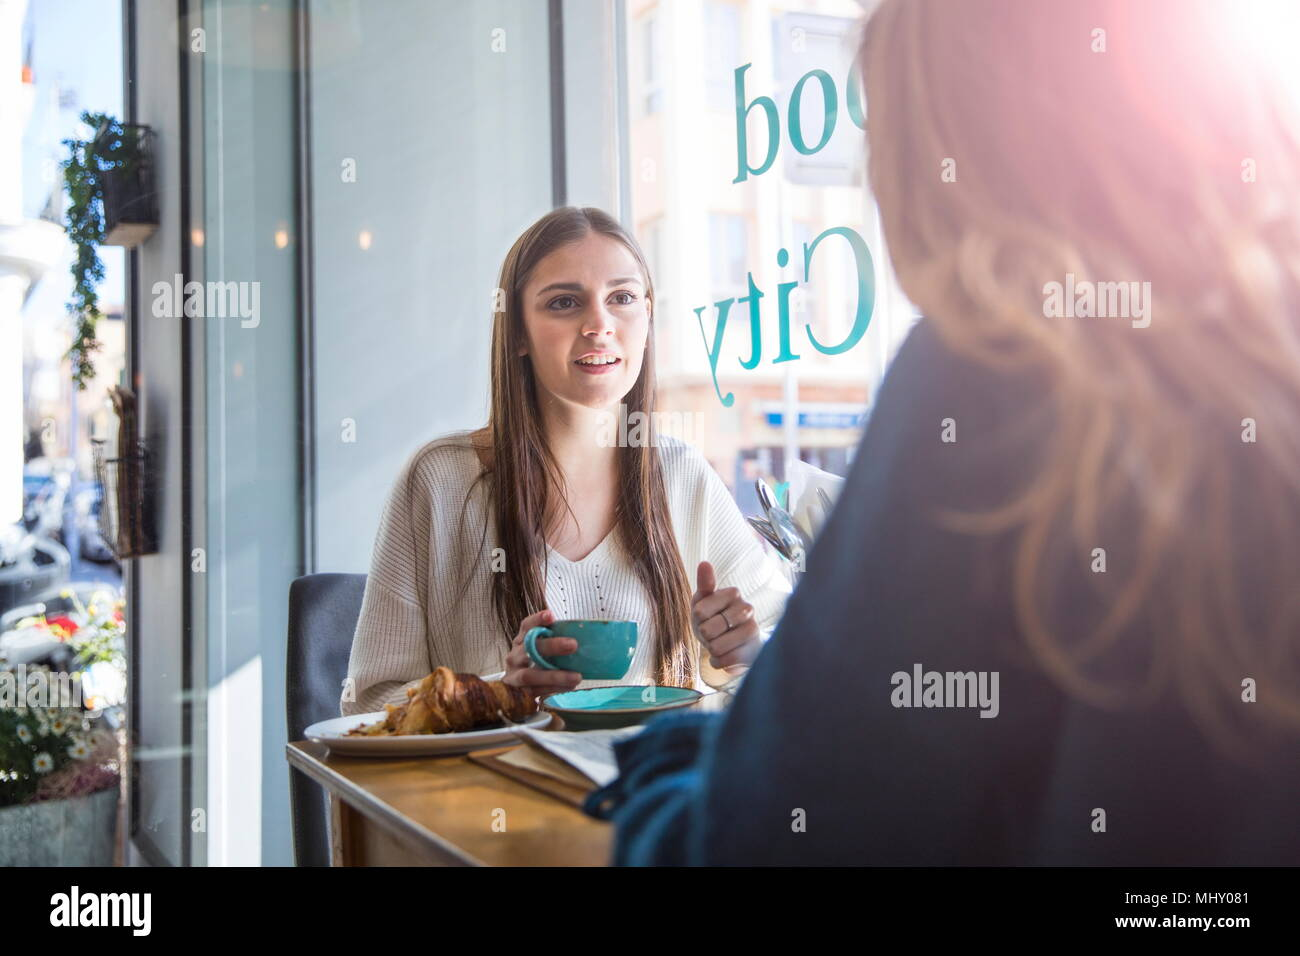 Two female friends sitting together in cafe, drinking coffee - Stock Image